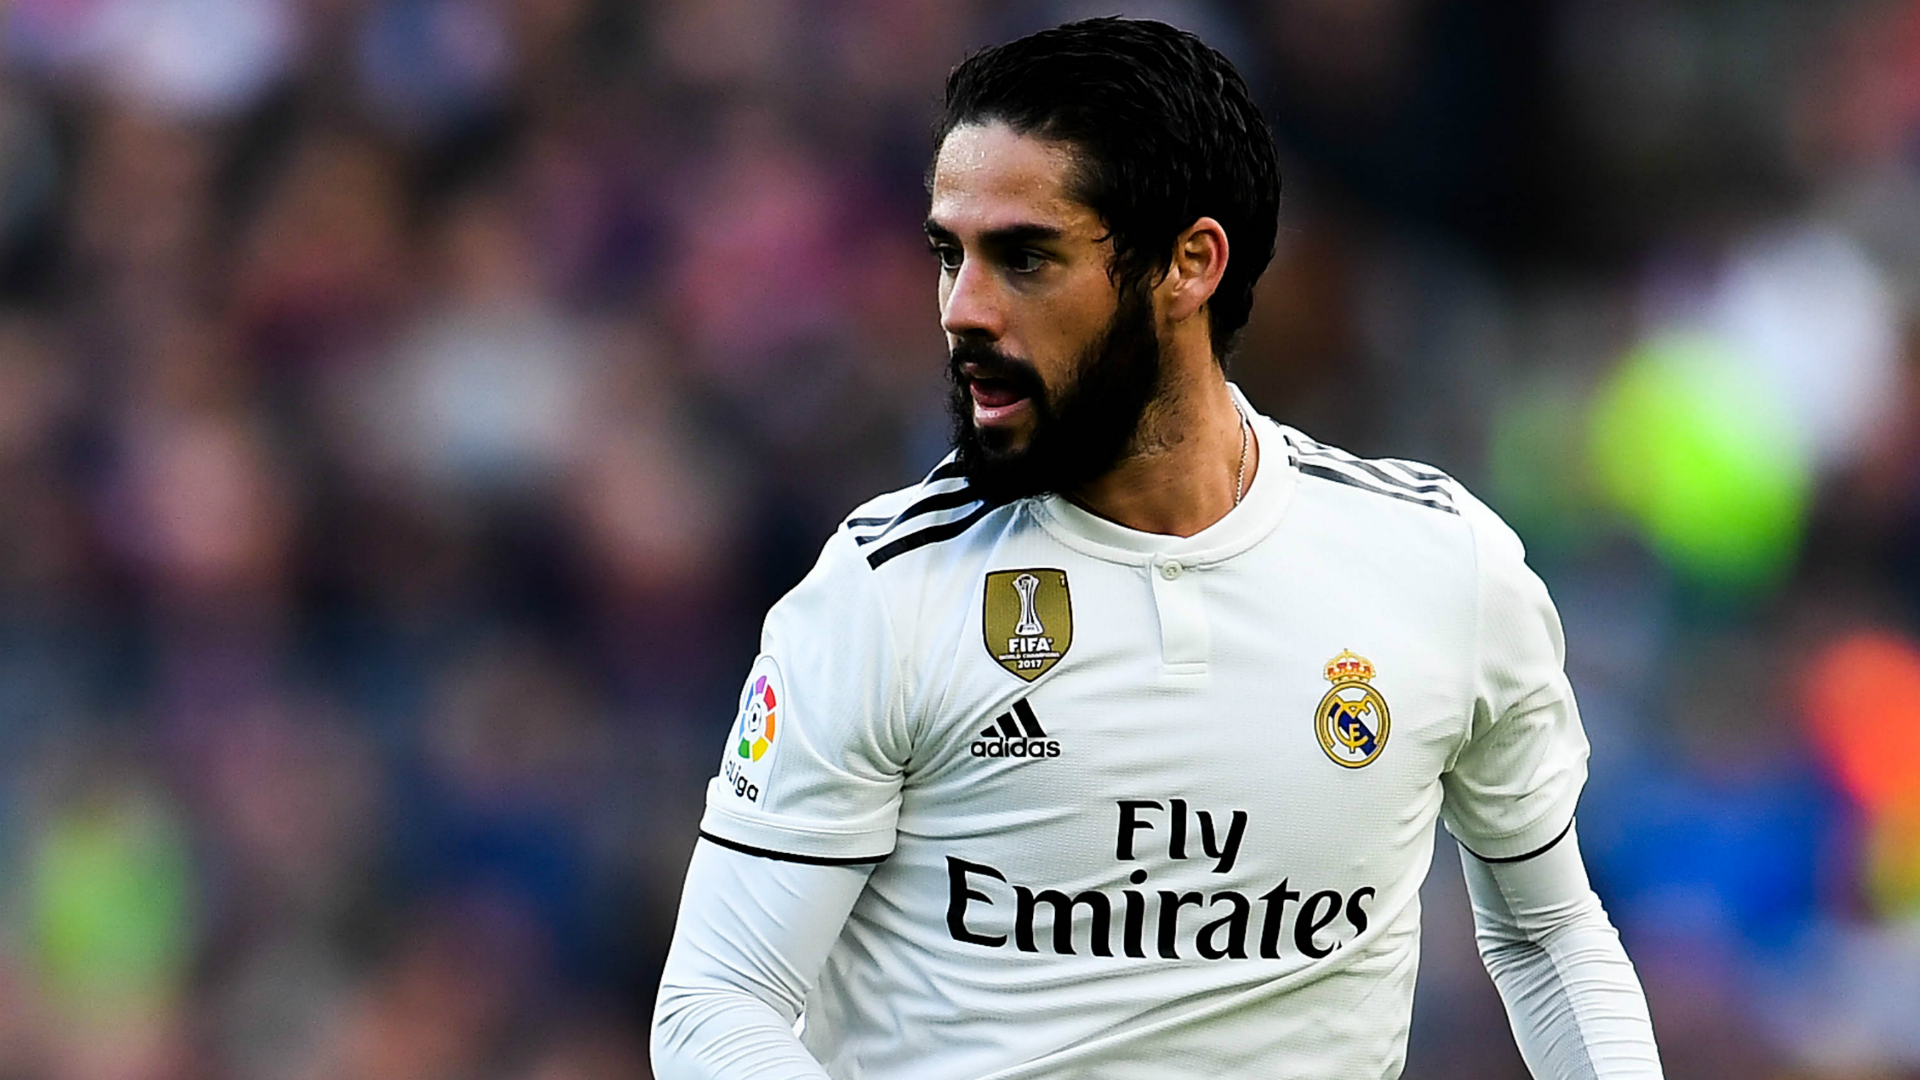 Van der Vaart: Isco the best player in the world